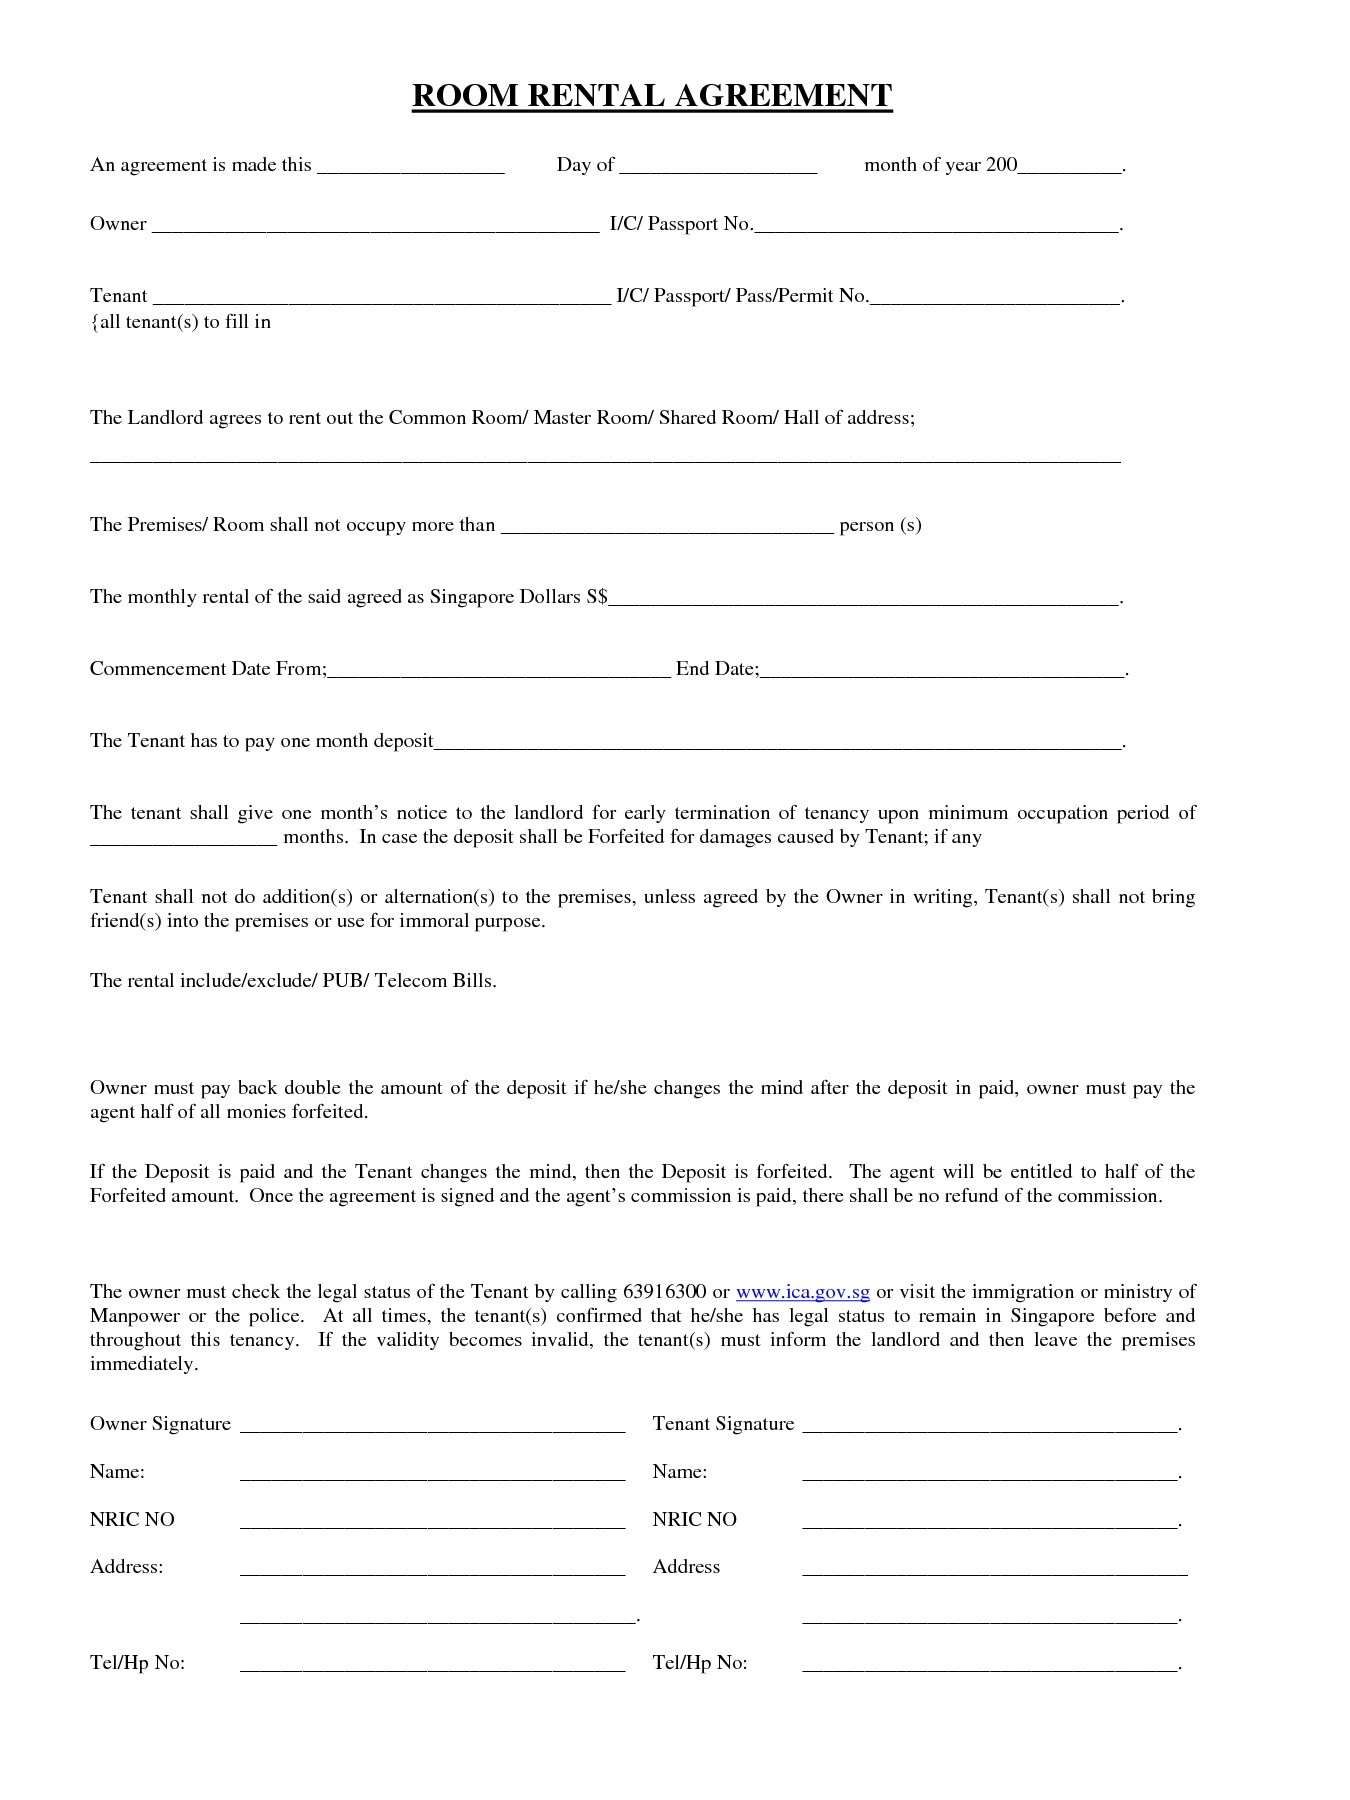 Room Rental Agreement Template Printable Realestate Form  Word Doc Malaysia Singapore PdfFull